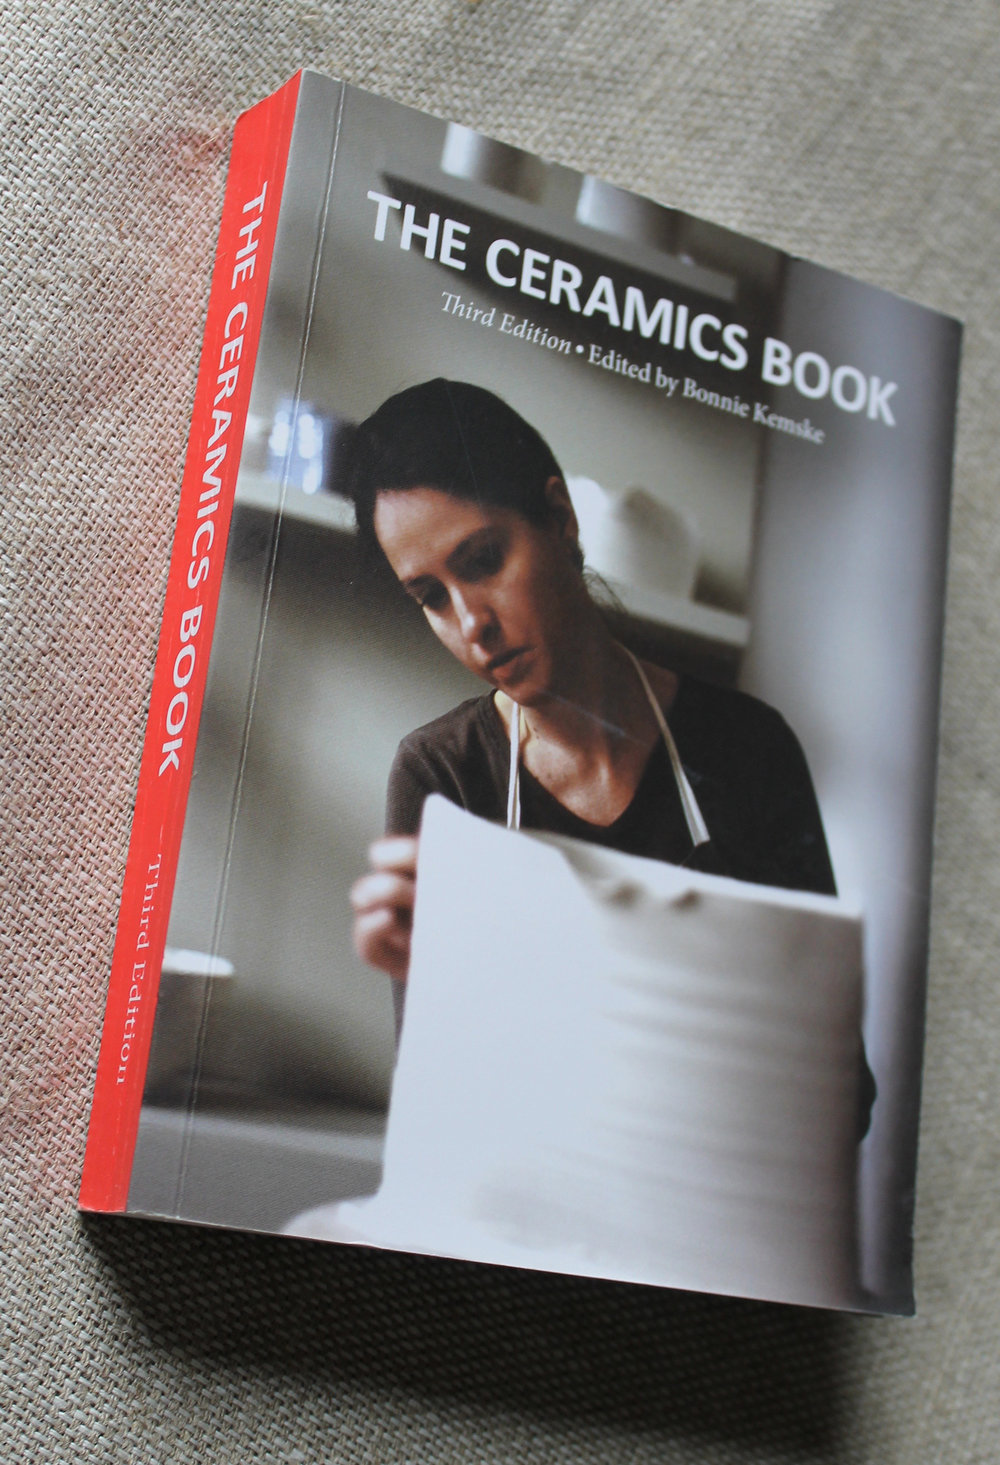 >> The Ceramics Book 3rd Edition